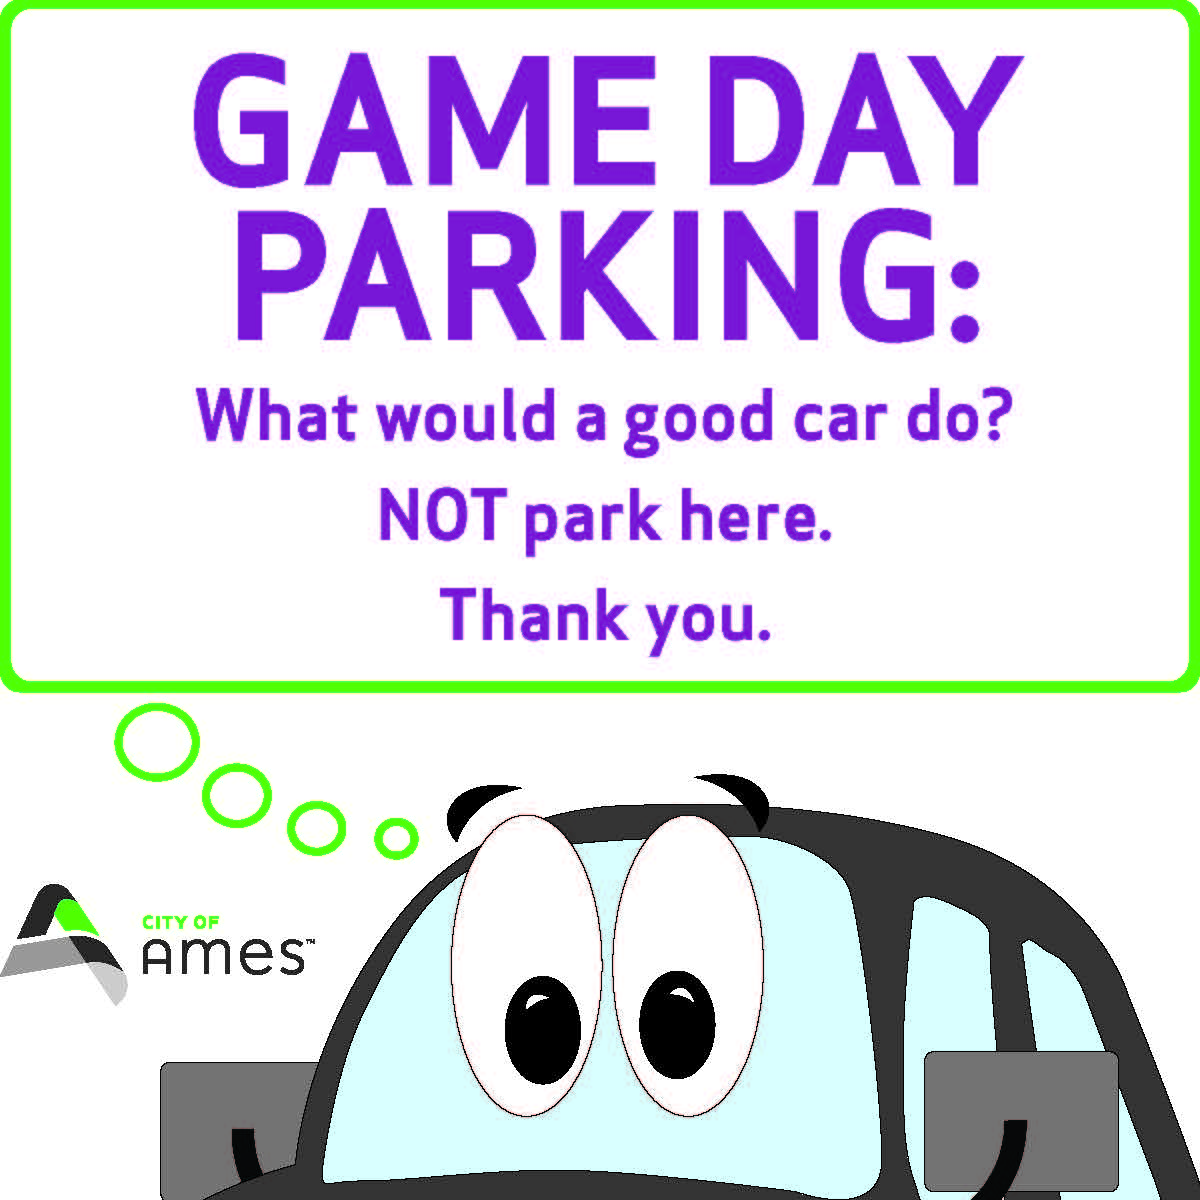 Game Day Parking graphic